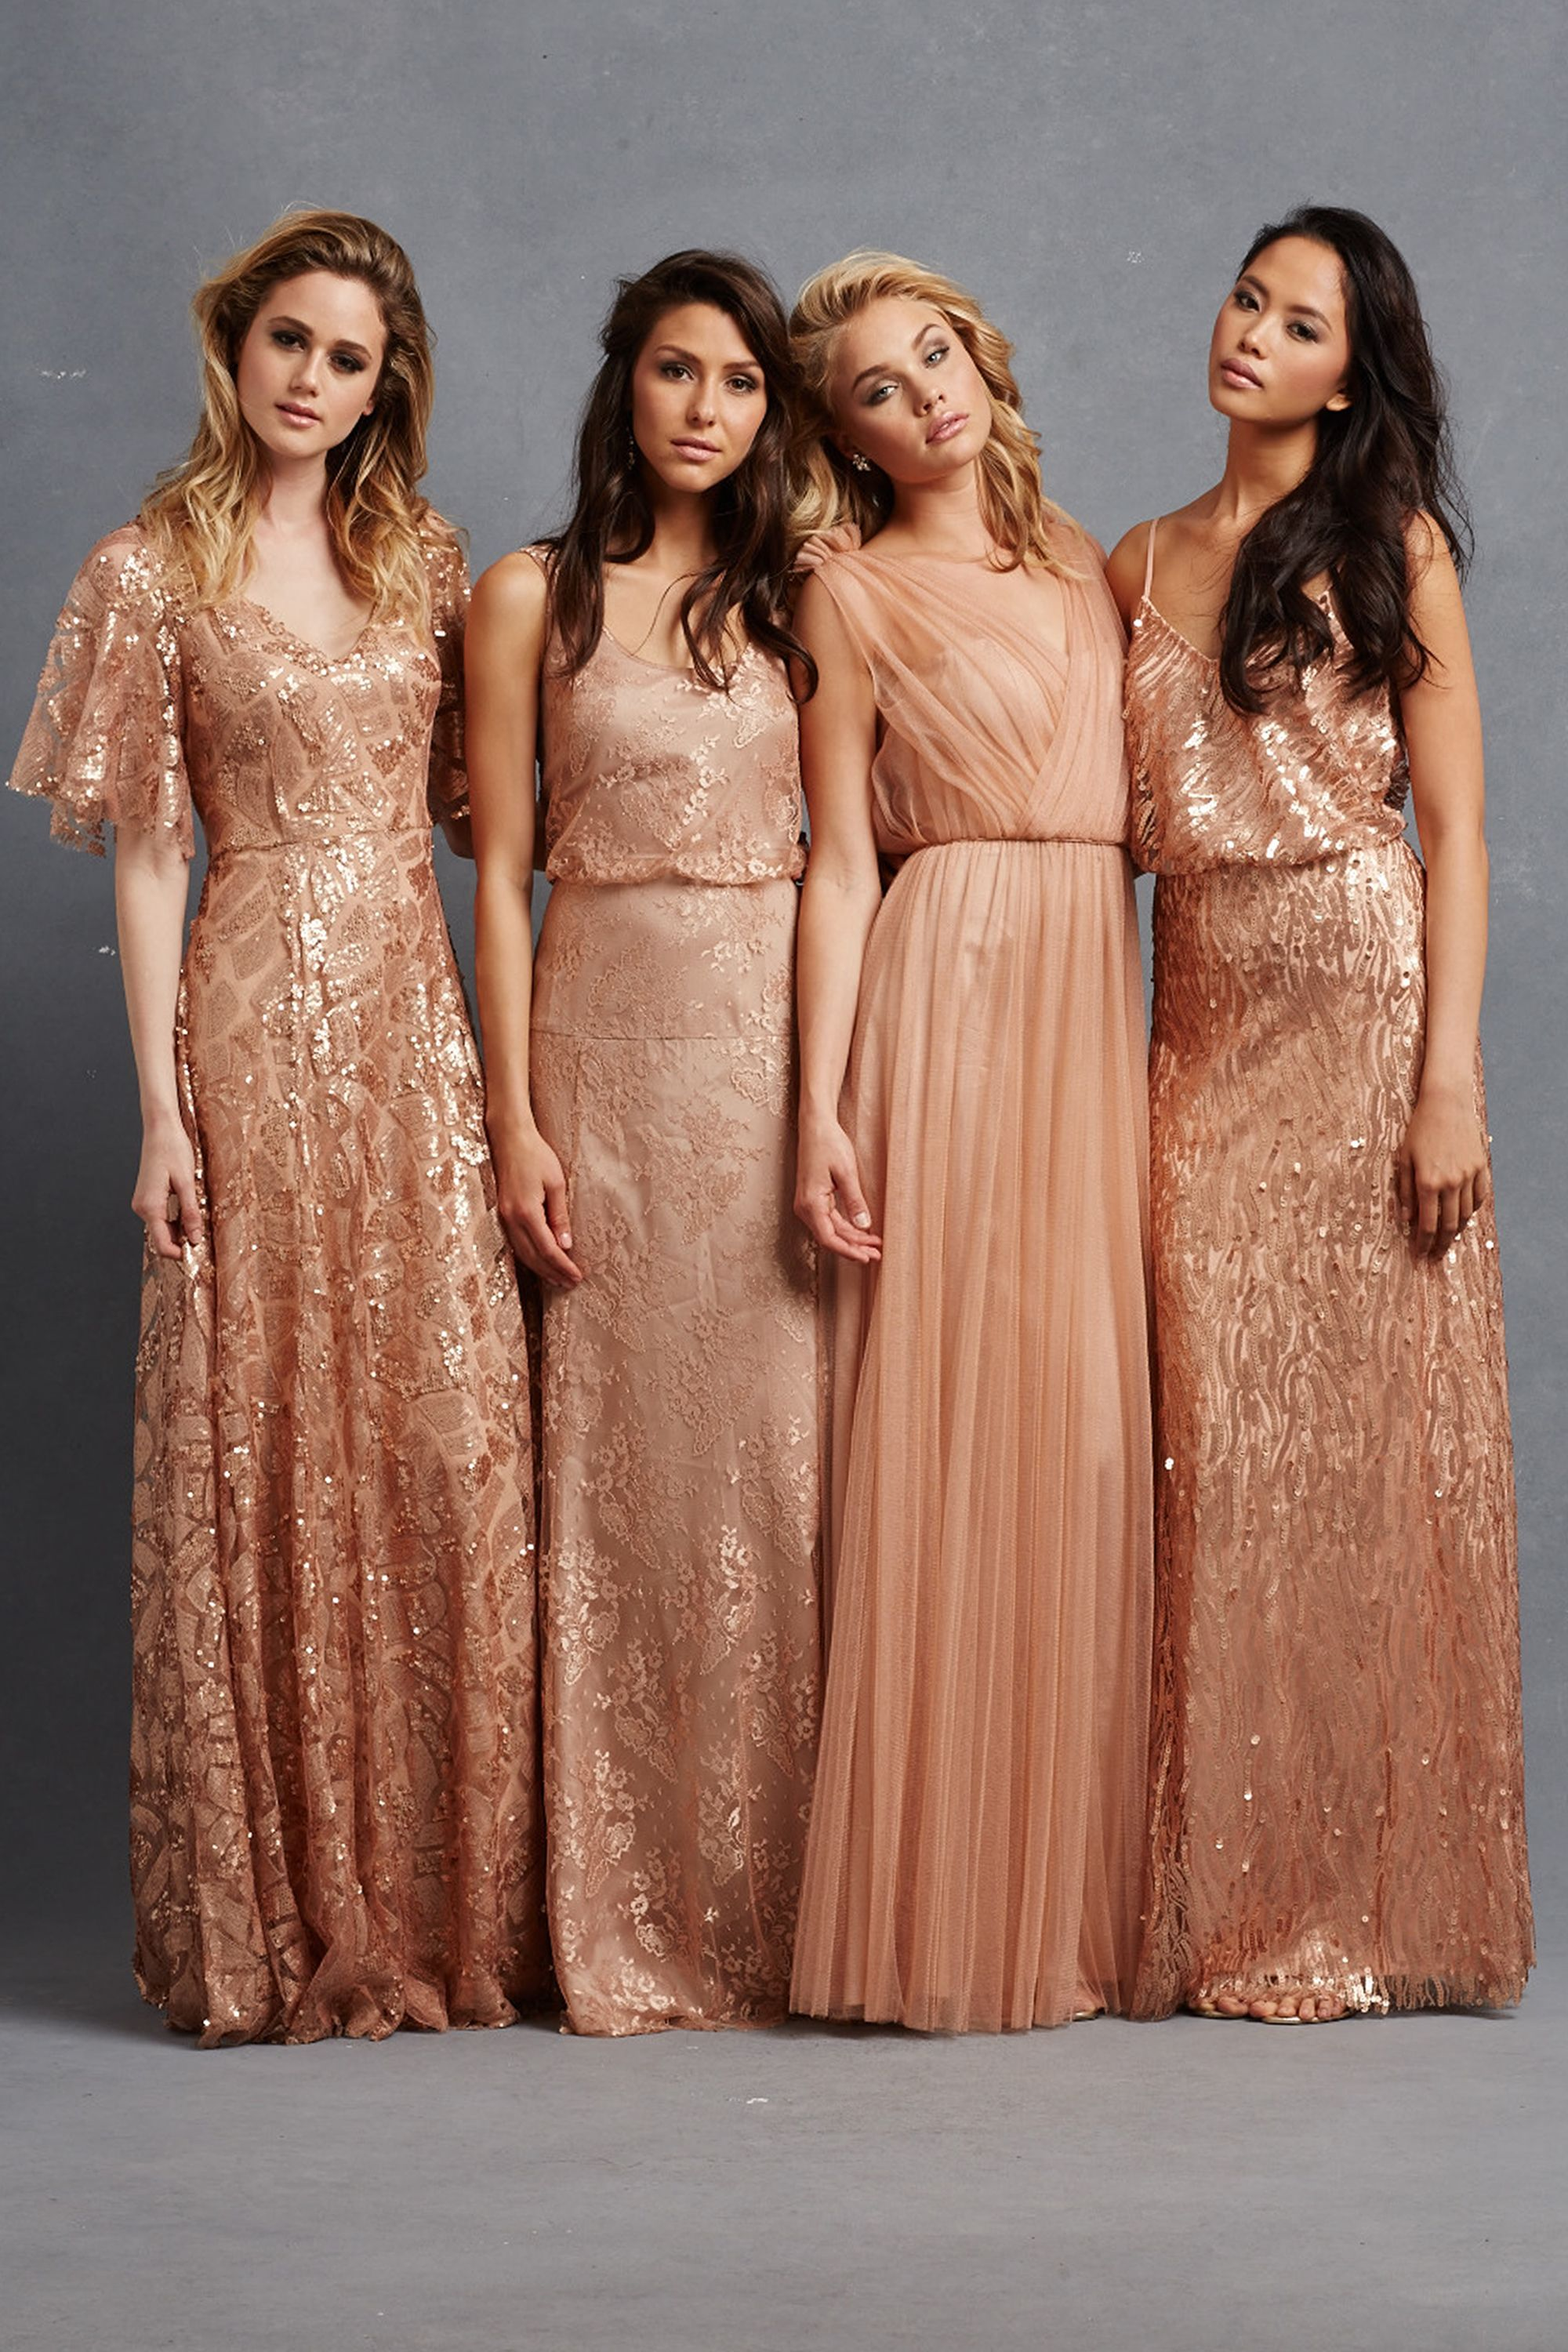 Donna morgans new serenity collection launches on june 15th new donna morgans new serenity collection launches on june 15th new styles new textiles copper bridesmaid dressesrose ombrellifo Images